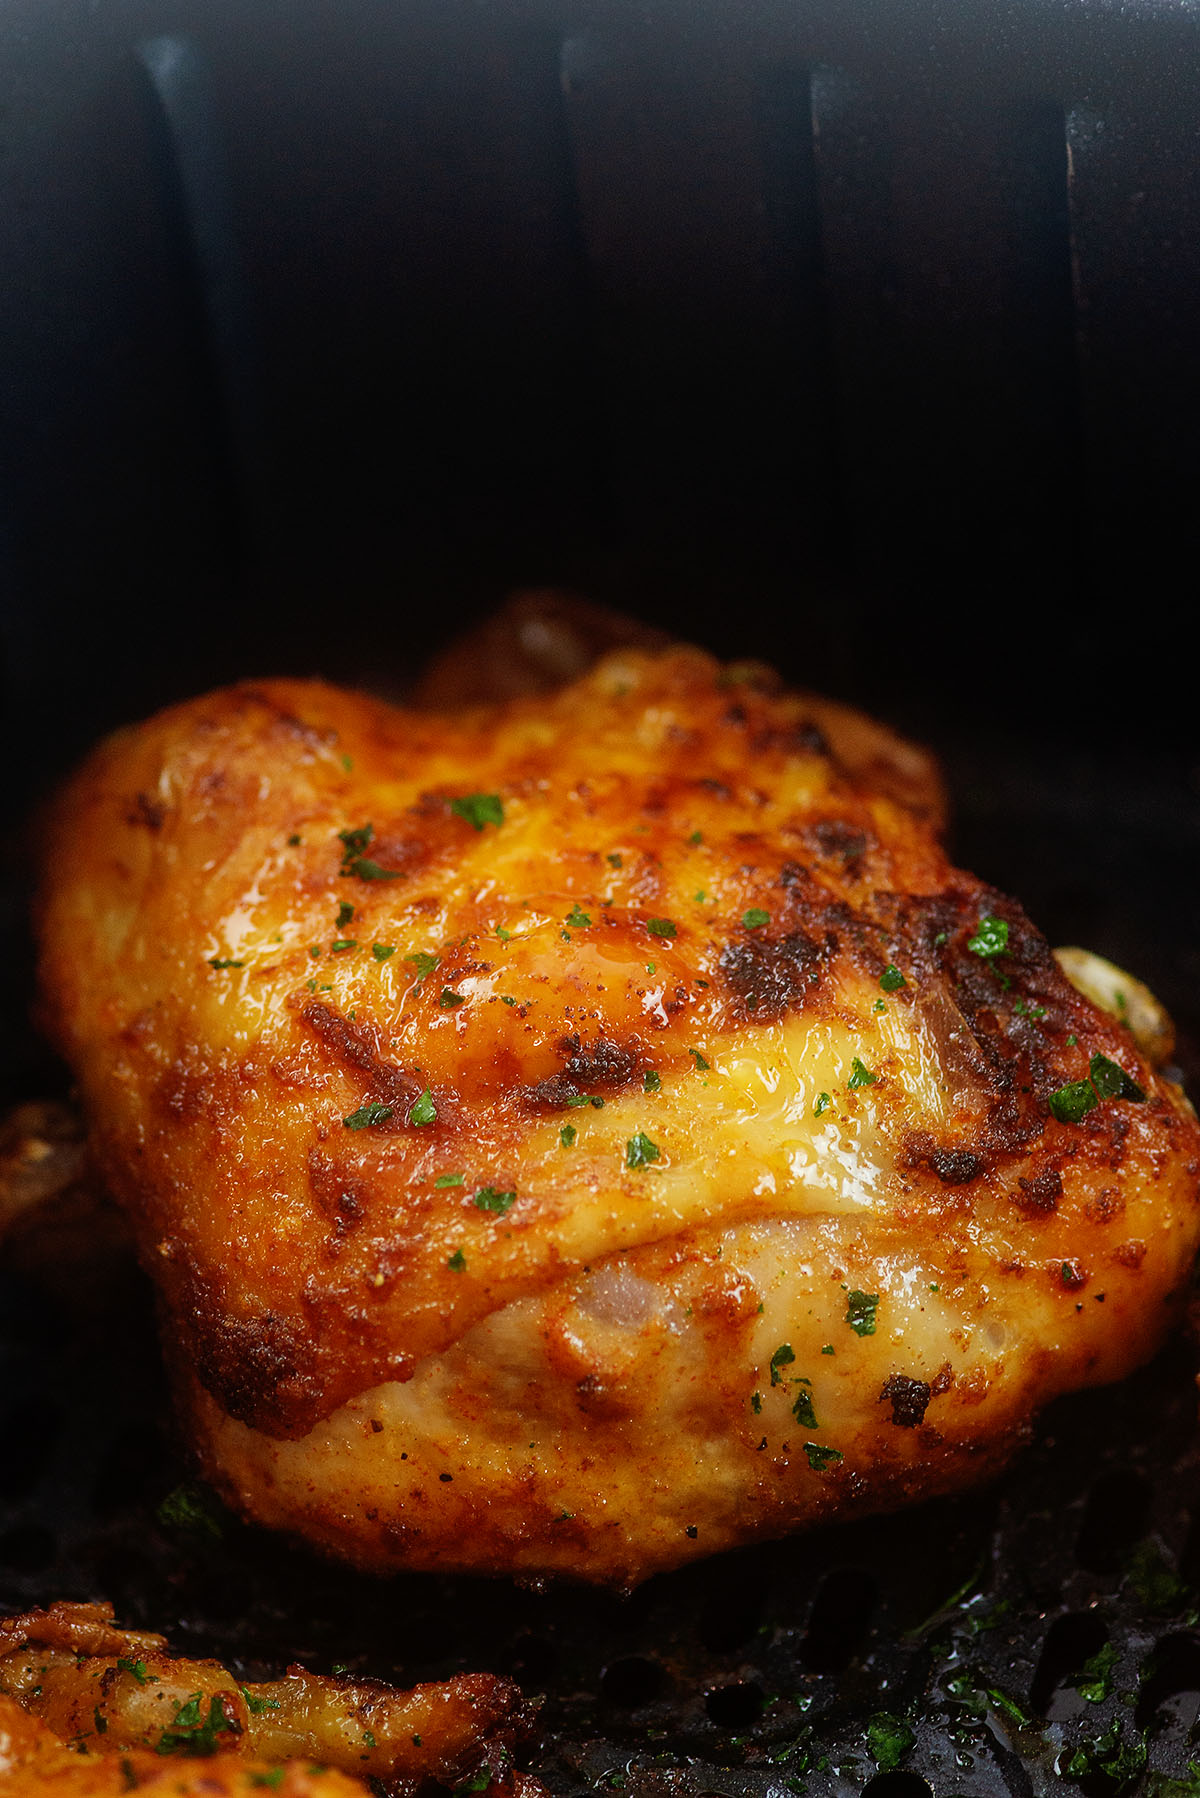 close up of cooked and seasoned chicken thigh in an air fryer basket.